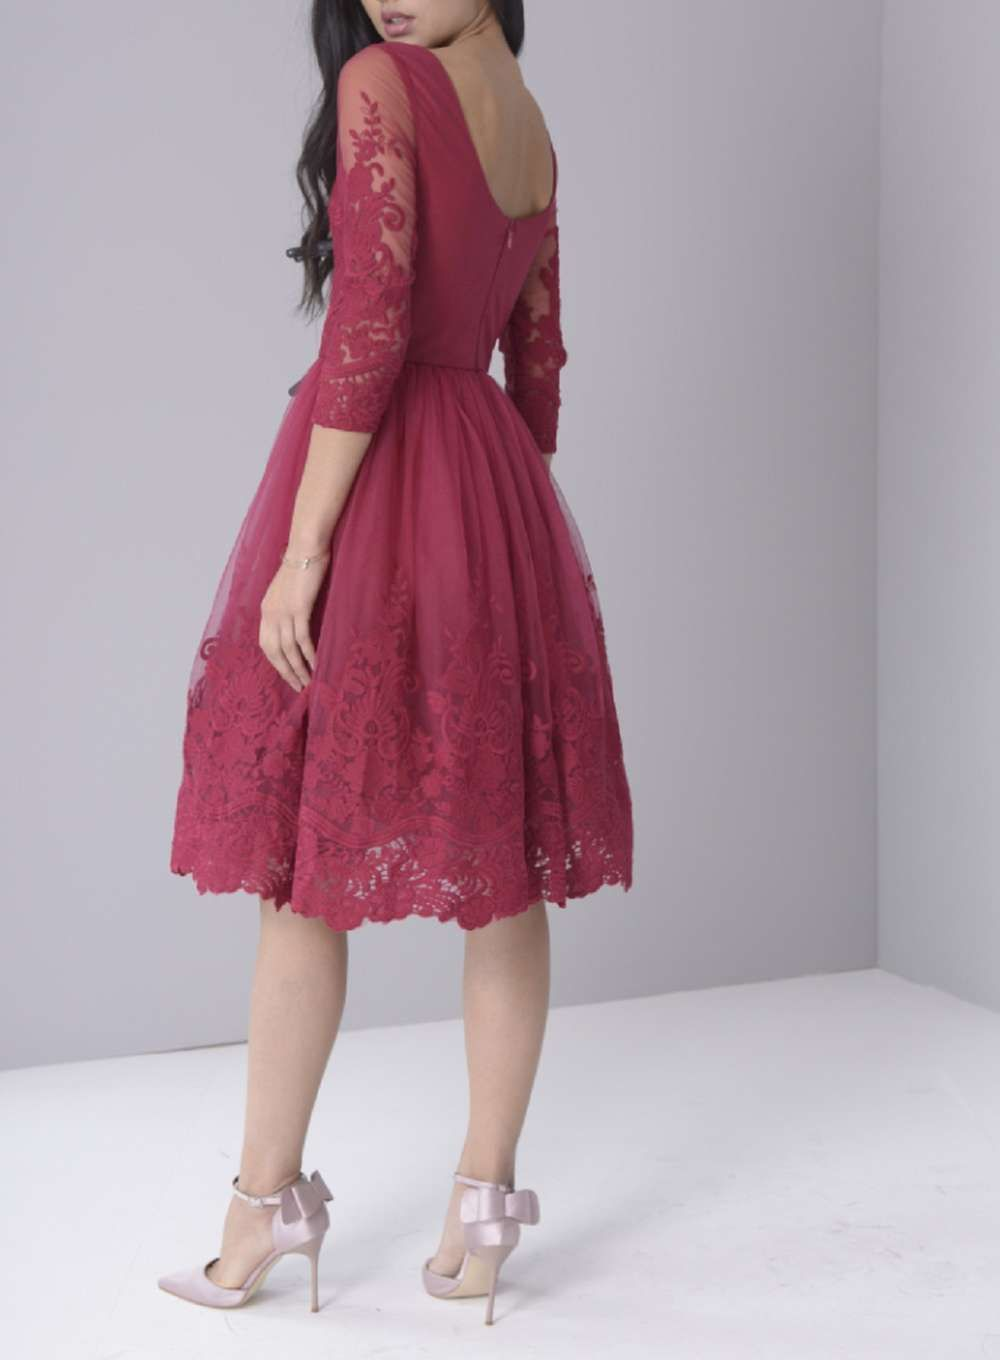 Chi chi london berry sleeve prom dress pinterest chi chi